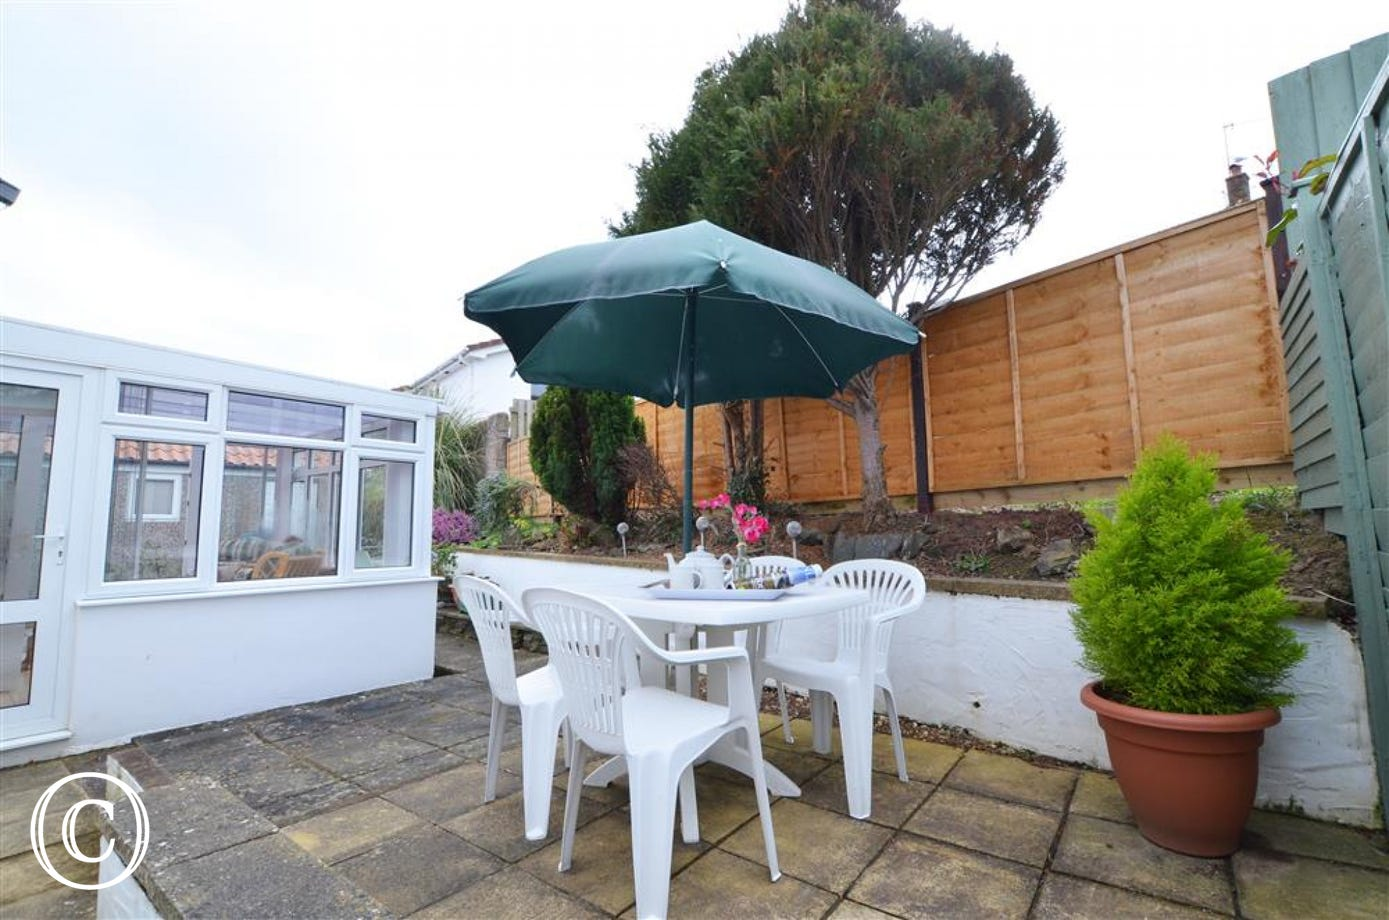 Enclosed patio with garden furniture